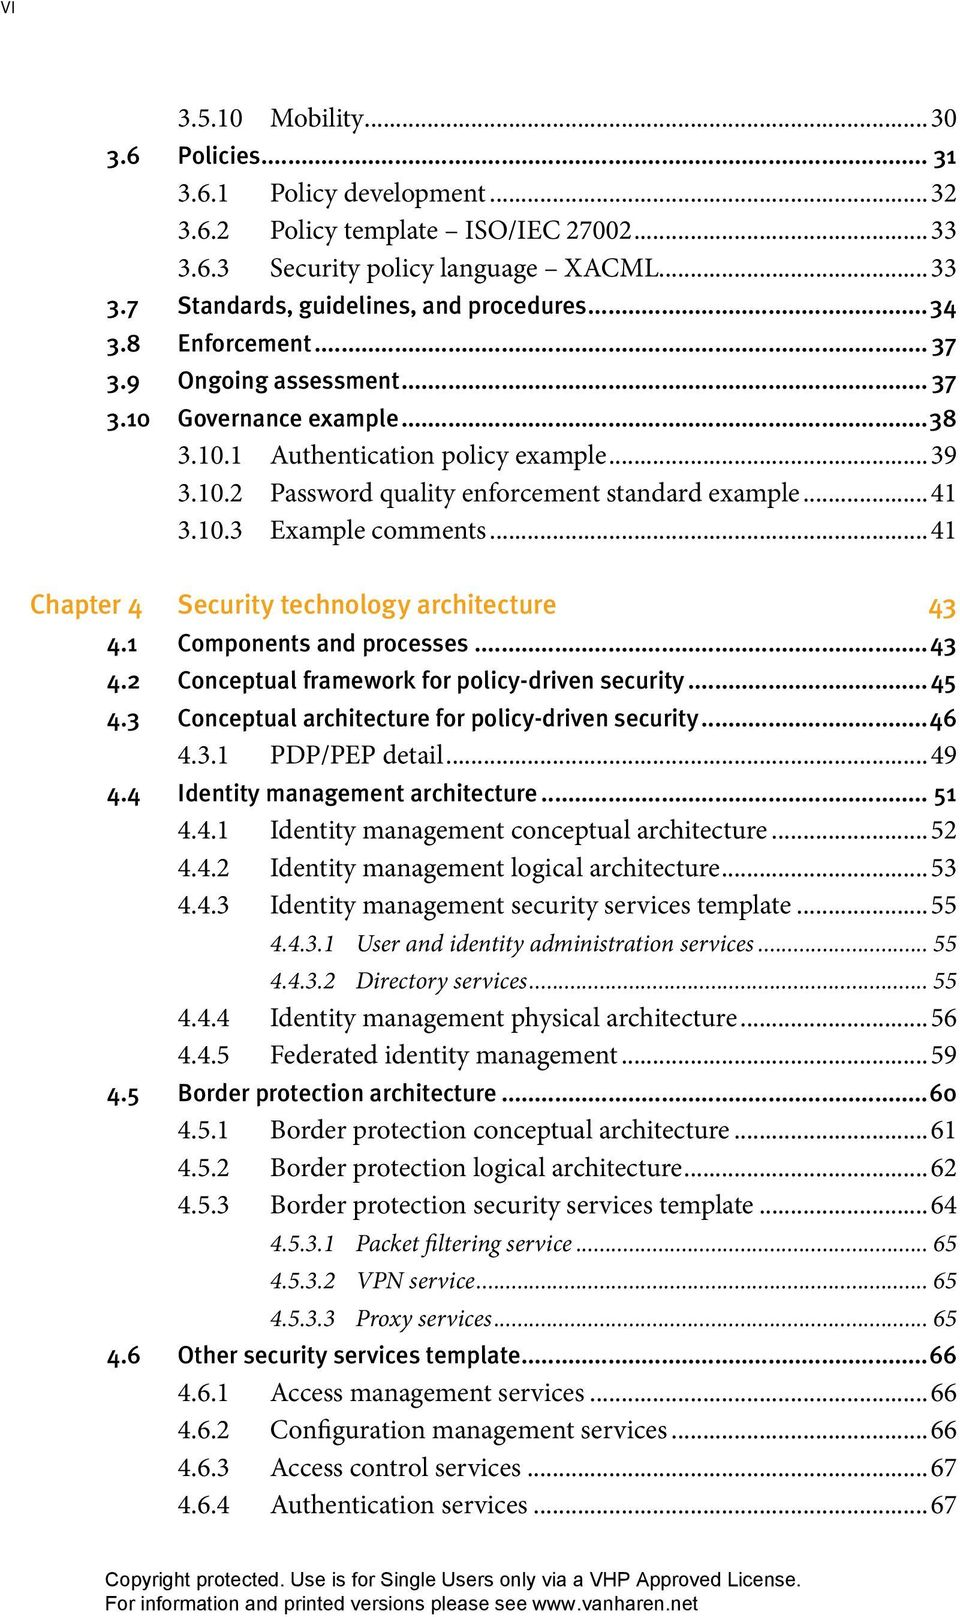 ..41 Chapter 4 Security technology architecture 43 4.1 Components and processes 43 4.2 Conceptual framework for policy-driven security 45 4.3 Conceptual architecture for policy-driven security 46 4.3.1 PDP/PEP detail.